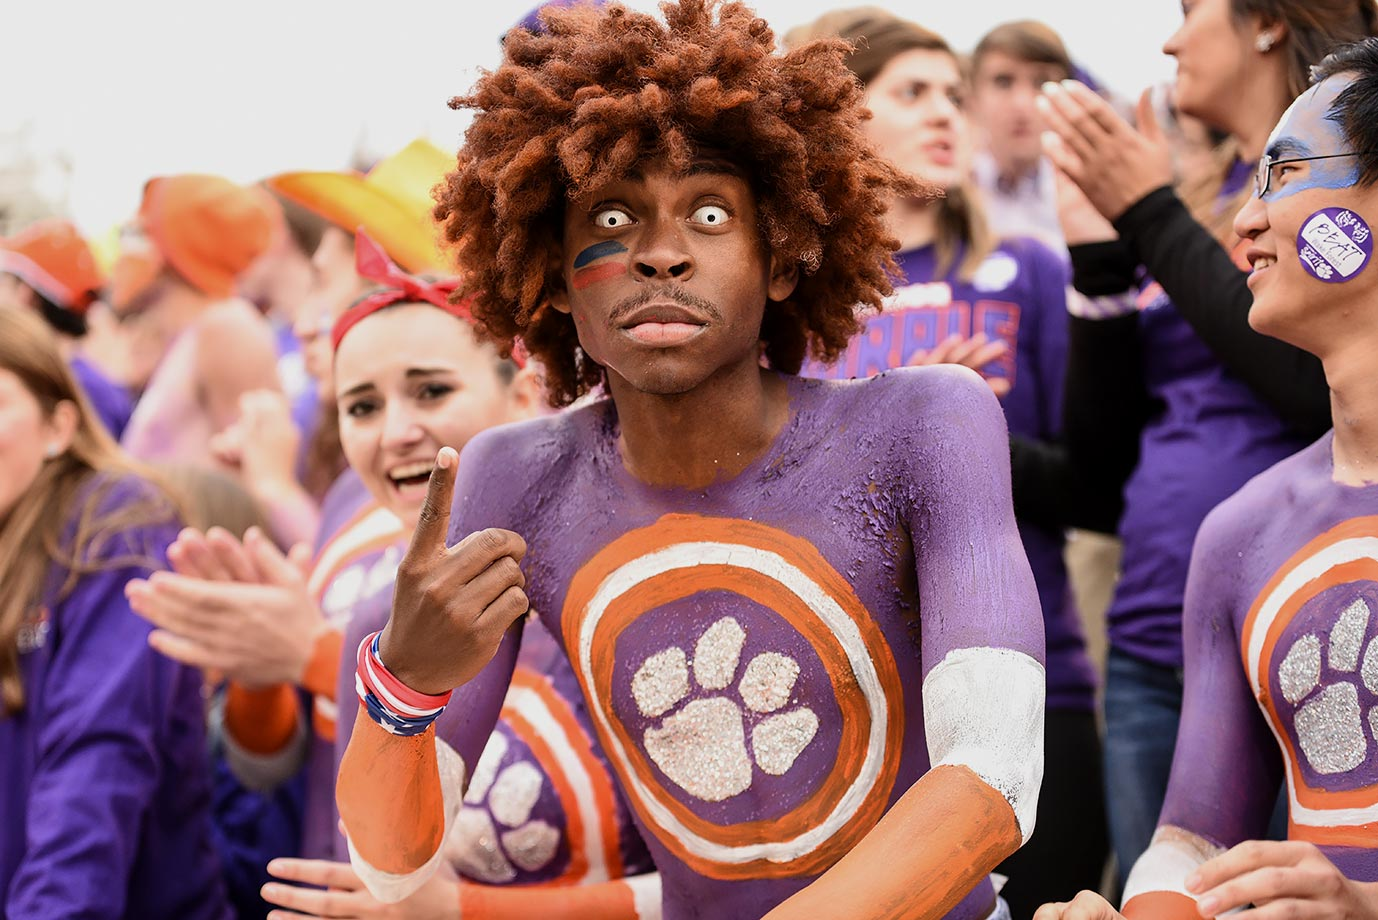 Body paint is usually enough for most Clemson fans, but sometimes you need to take it up a notch.